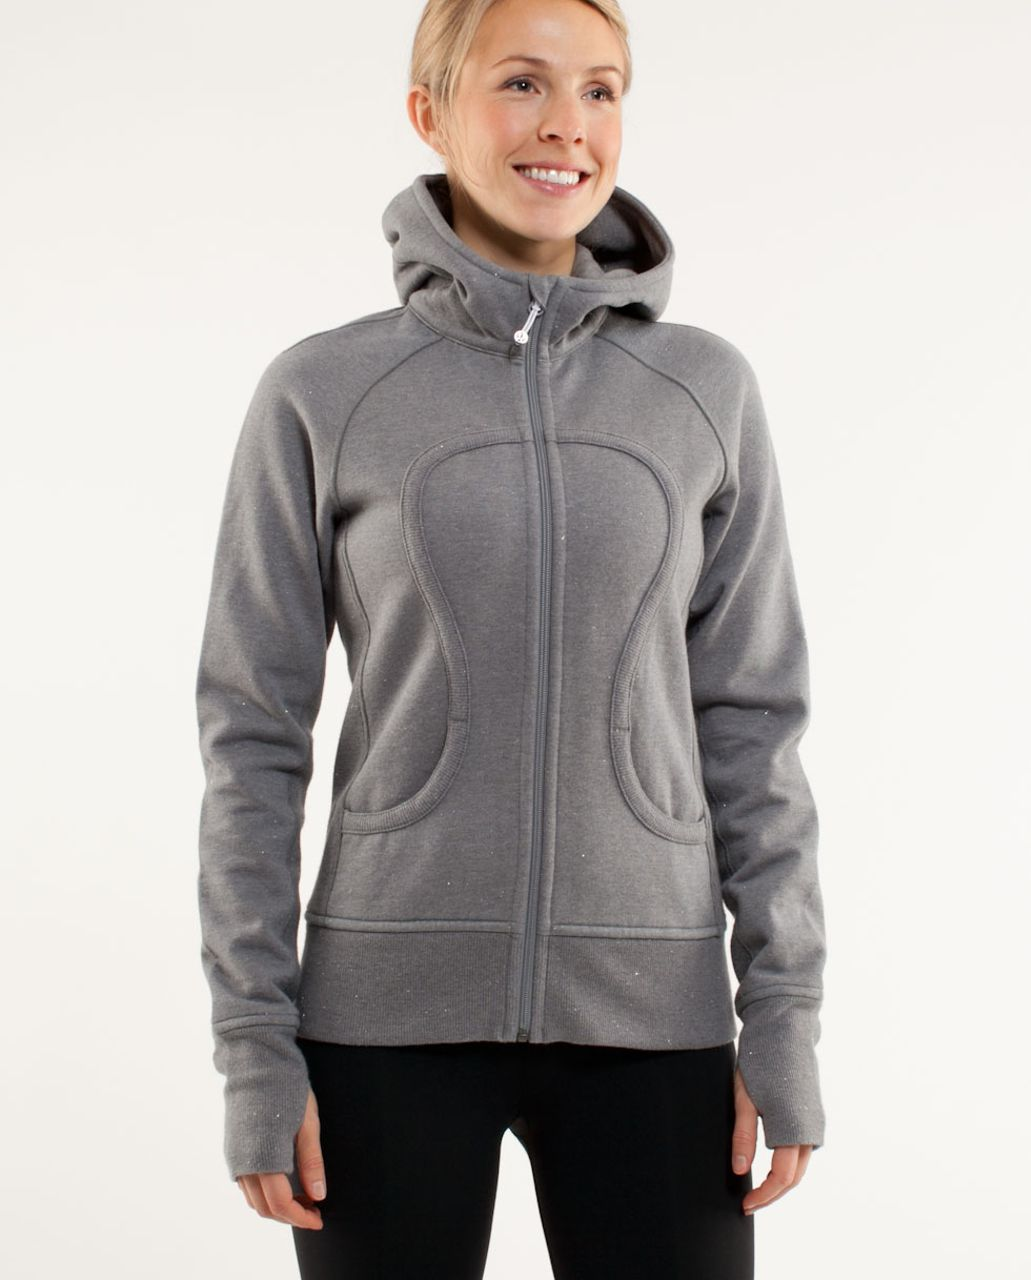 for sale how to choose los angeles Lululemon Scuba Hoodie *Sparkle - Heathered Blurred Grey / Blurred Grey